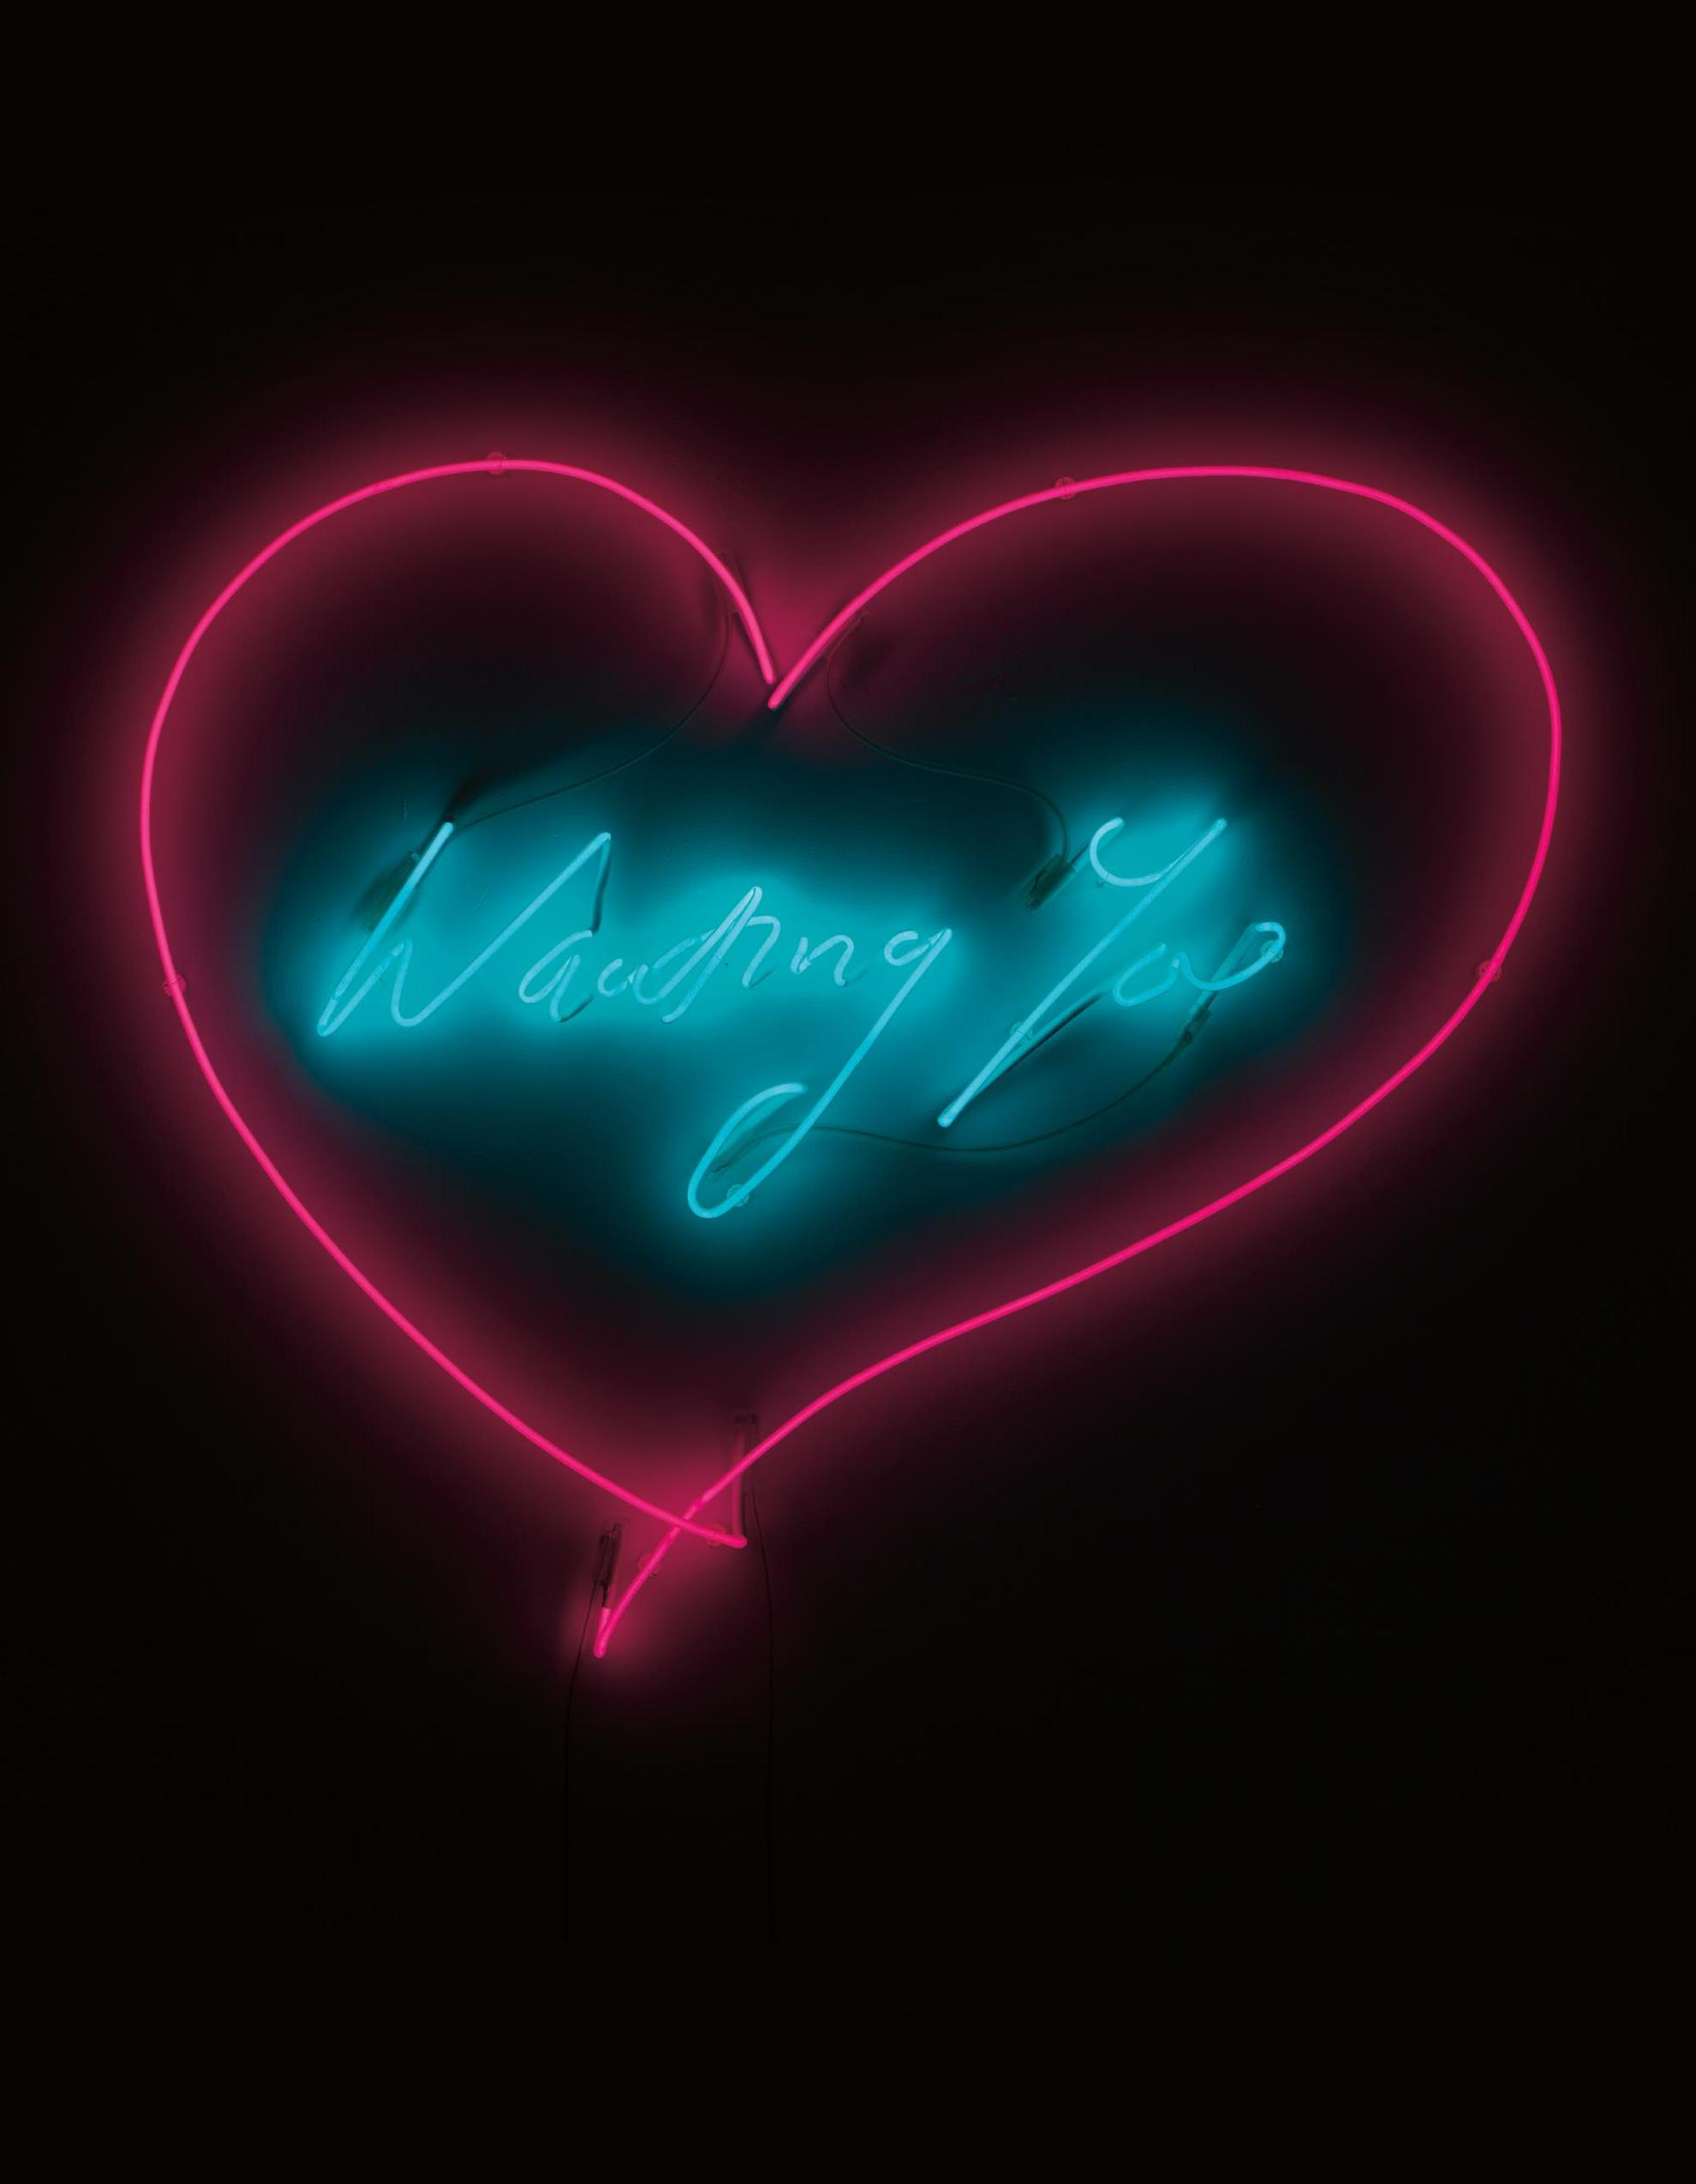 Tracey Emin-Wanting You-2014